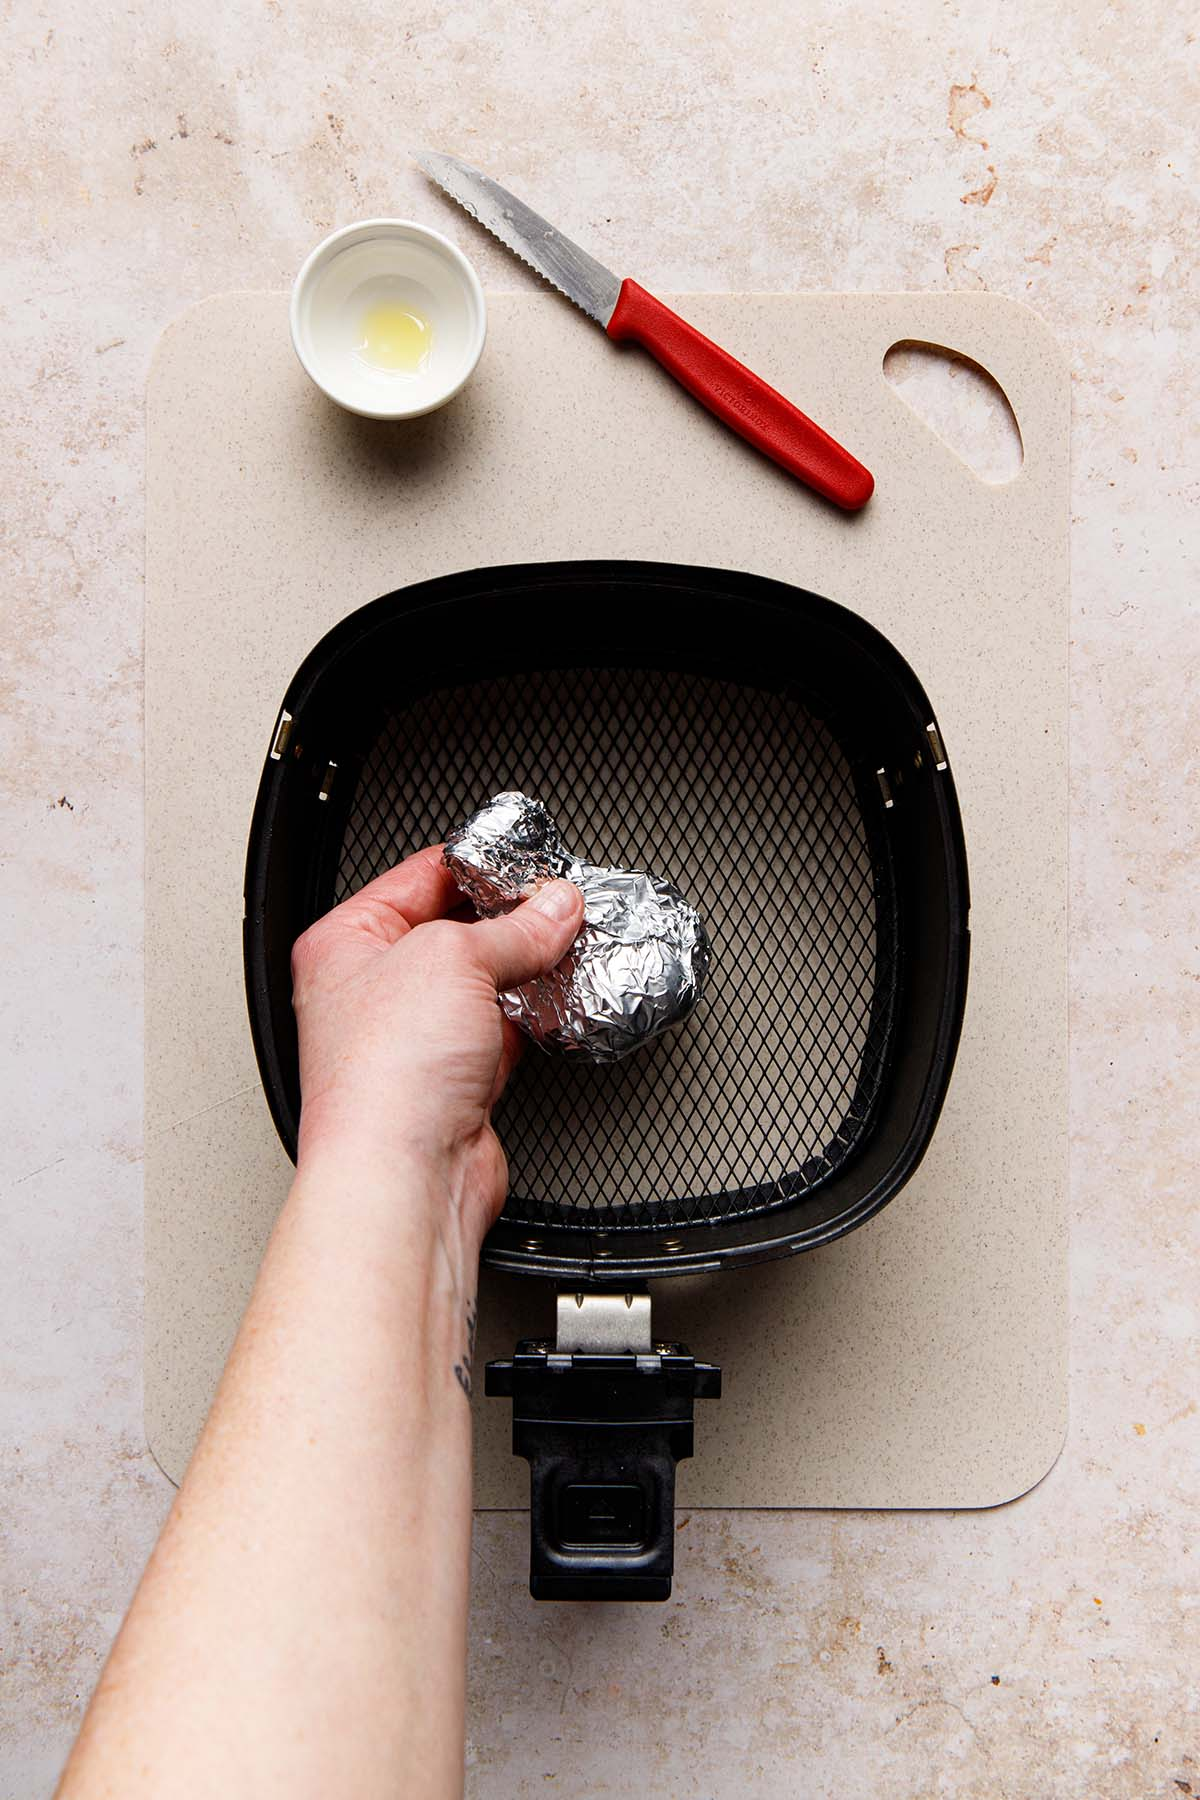 A hand placing a small item, wrapped in aluminum foil, inside the basket of an air fryer.